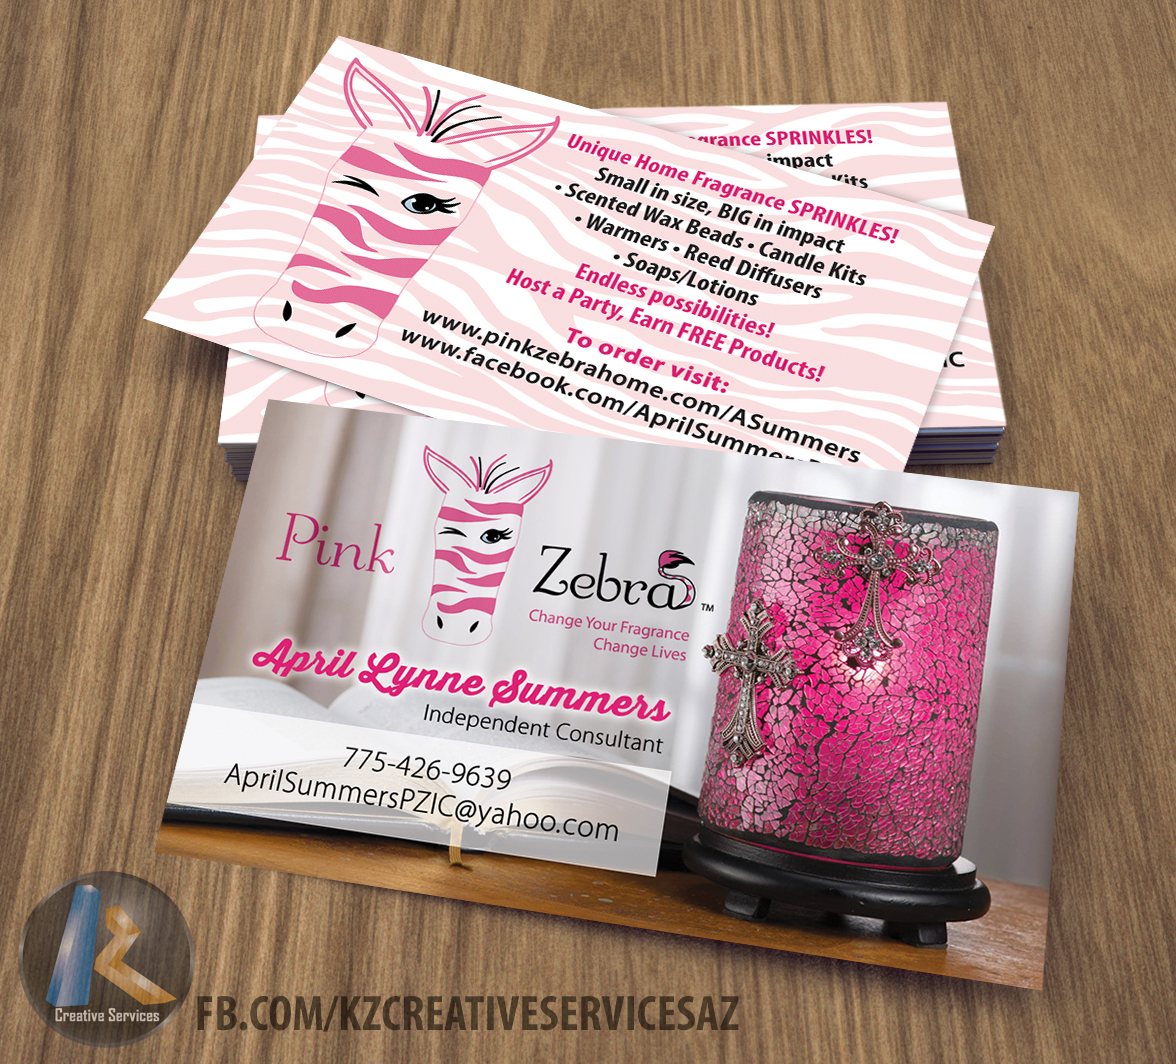 PINK ZEBRA business Cards style 2 · KZ Creative Services · Online ...